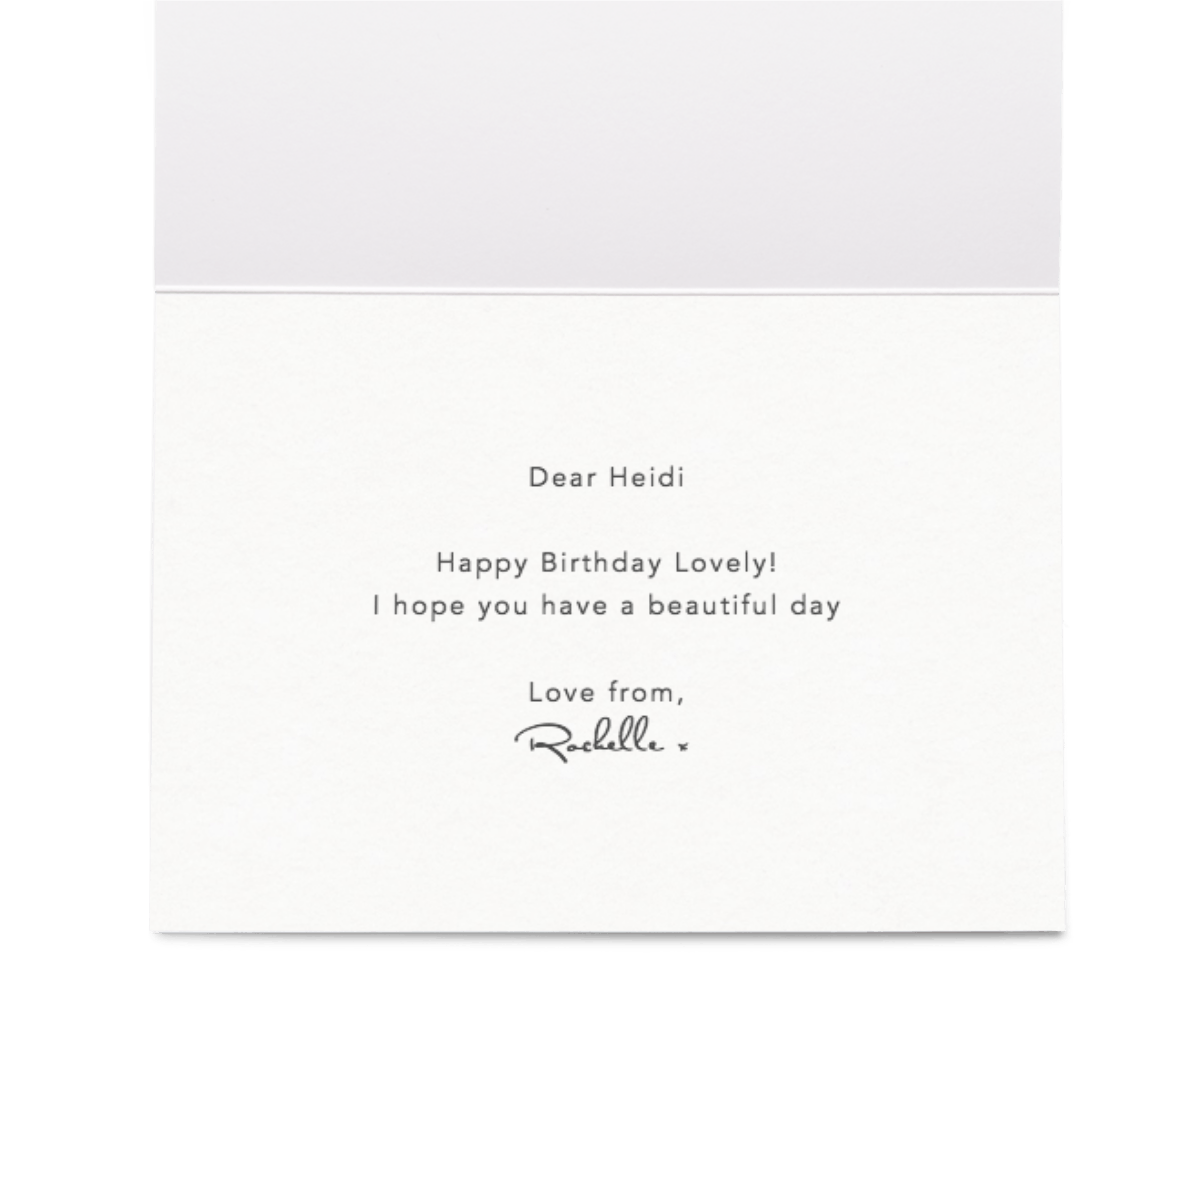 Https%3a%2f%2fwww.papier.com%2fproduct image%2f61821%2f20%2fhappy birthday florals 14675 inside 1547811550.png?ixlib=rb 1.1